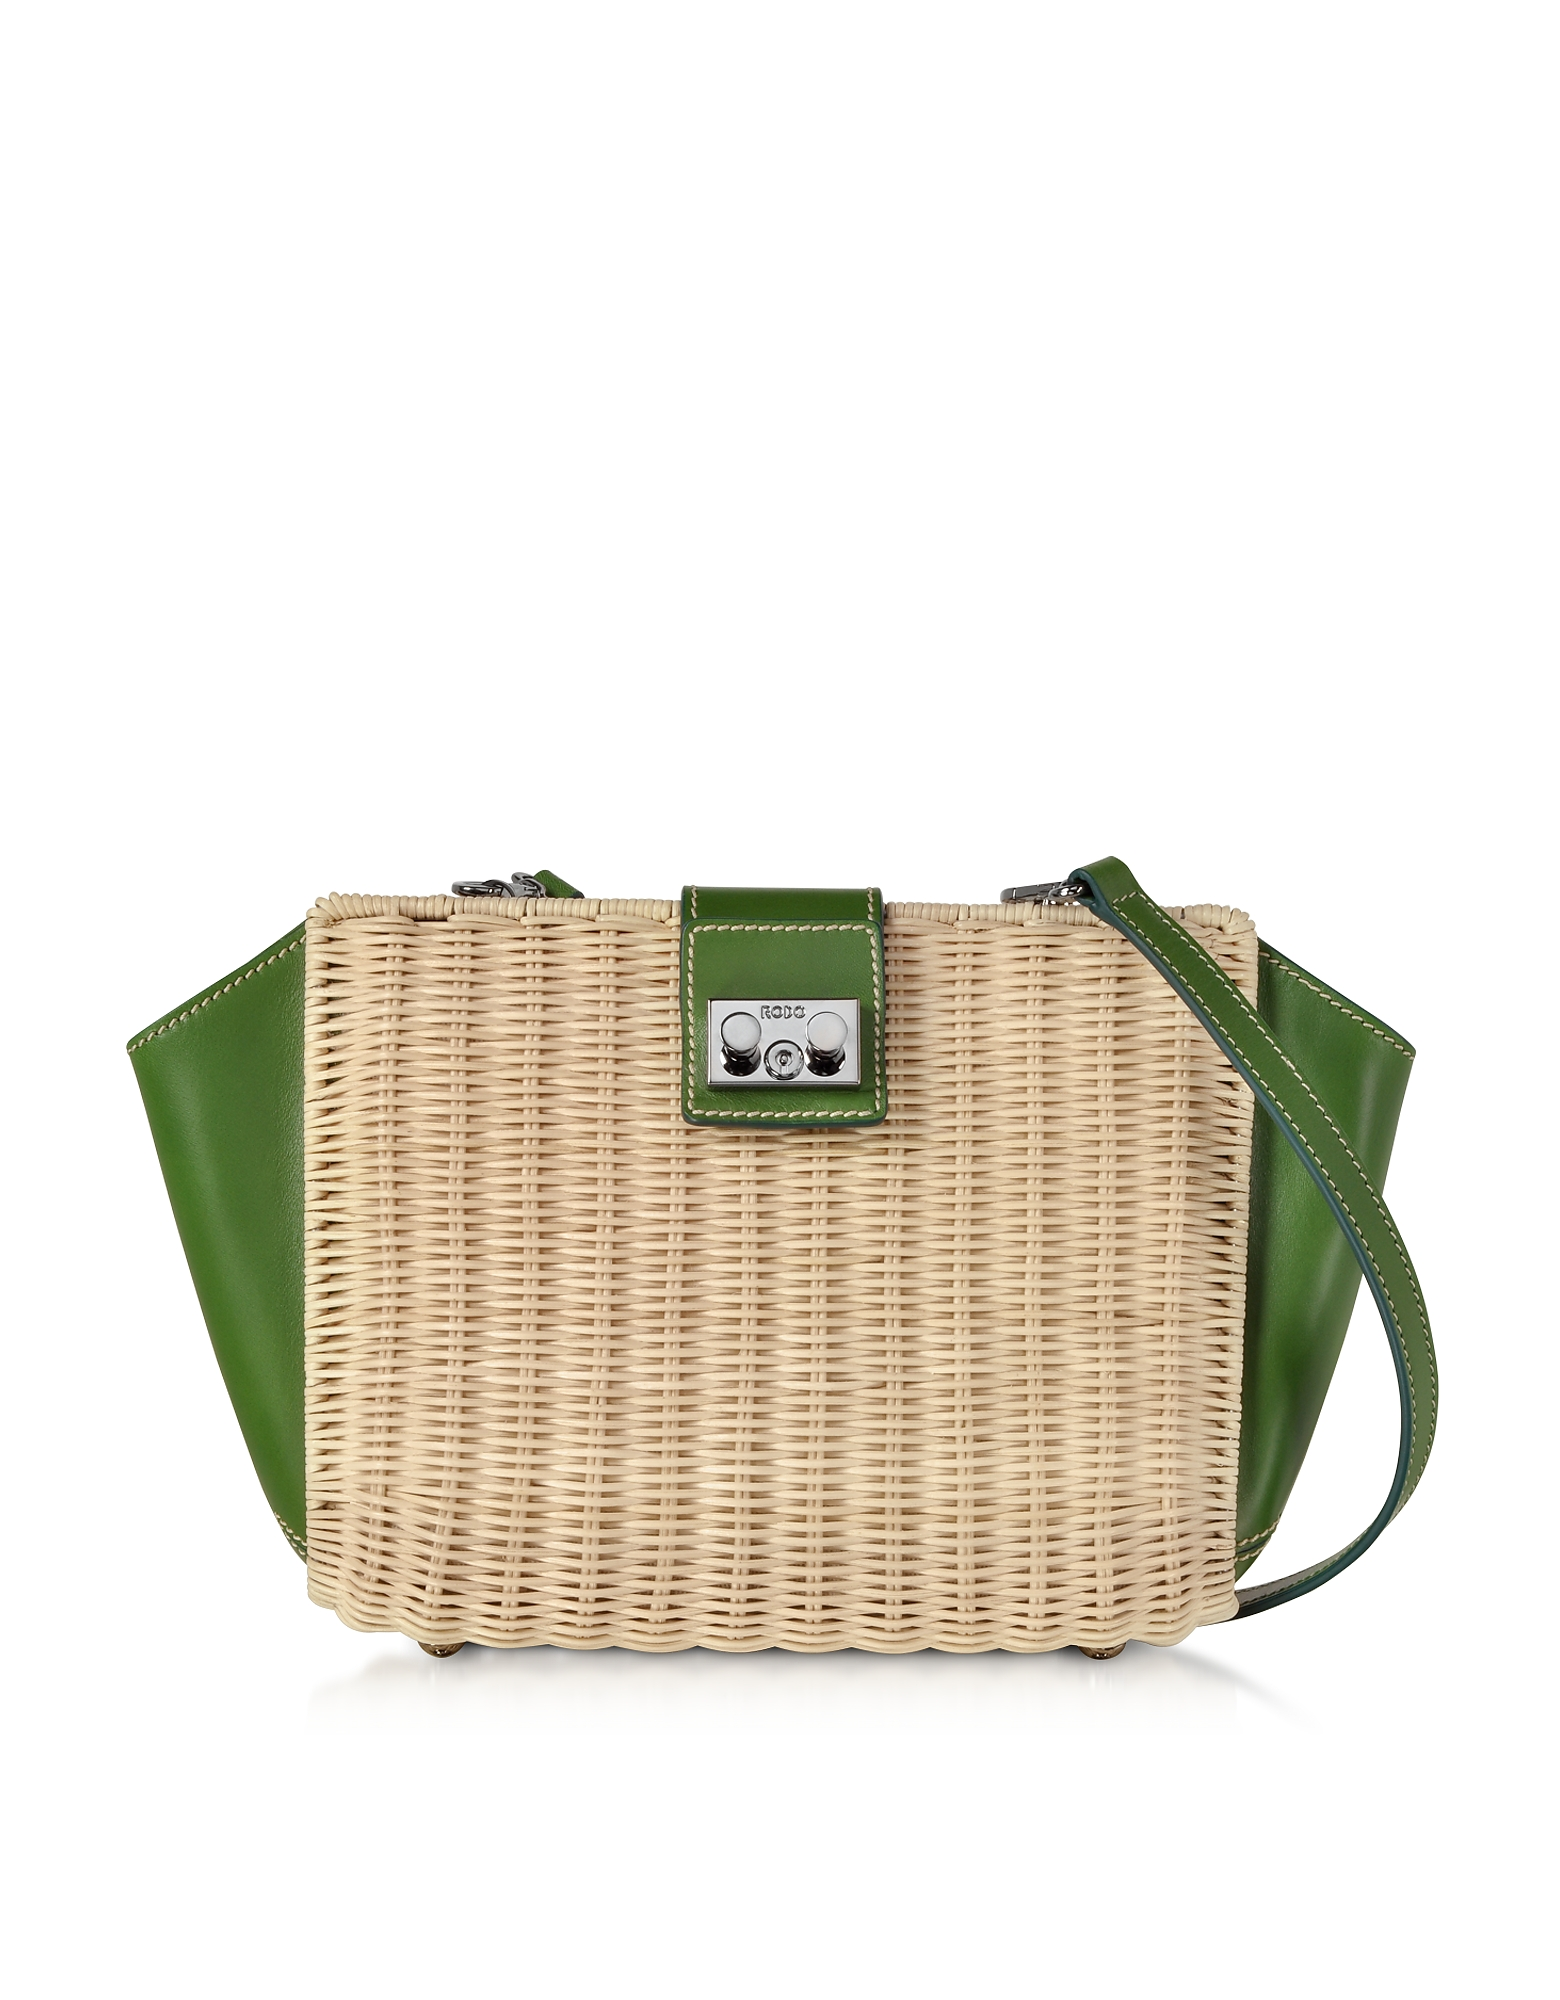 Whitewashed Wicker and Leather Trapeze Shoulder Bag